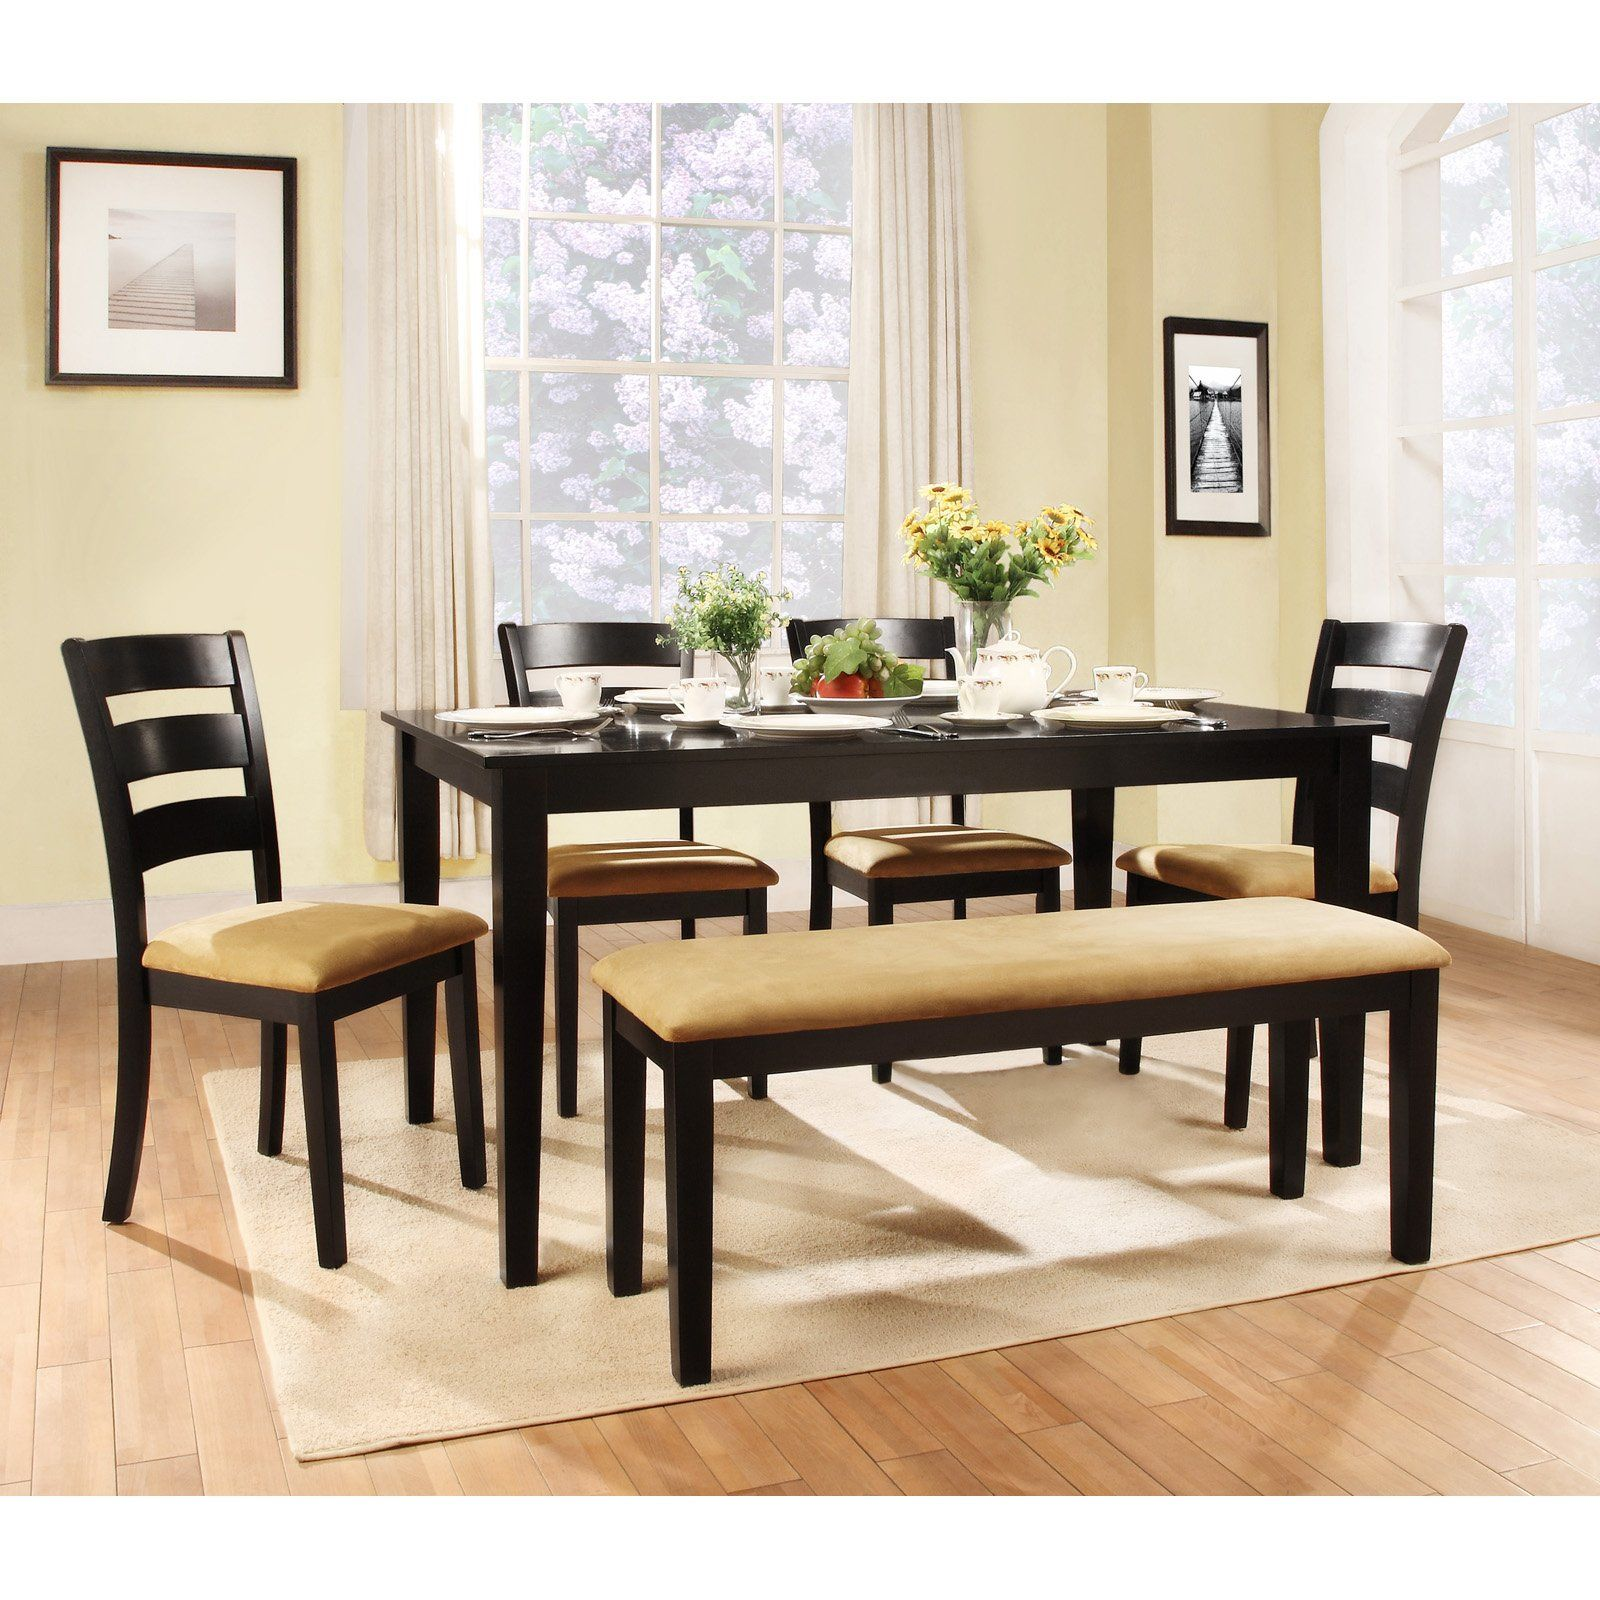 Have To Have It. Tibalt 6 Pc. Rectangle Black Dining Table